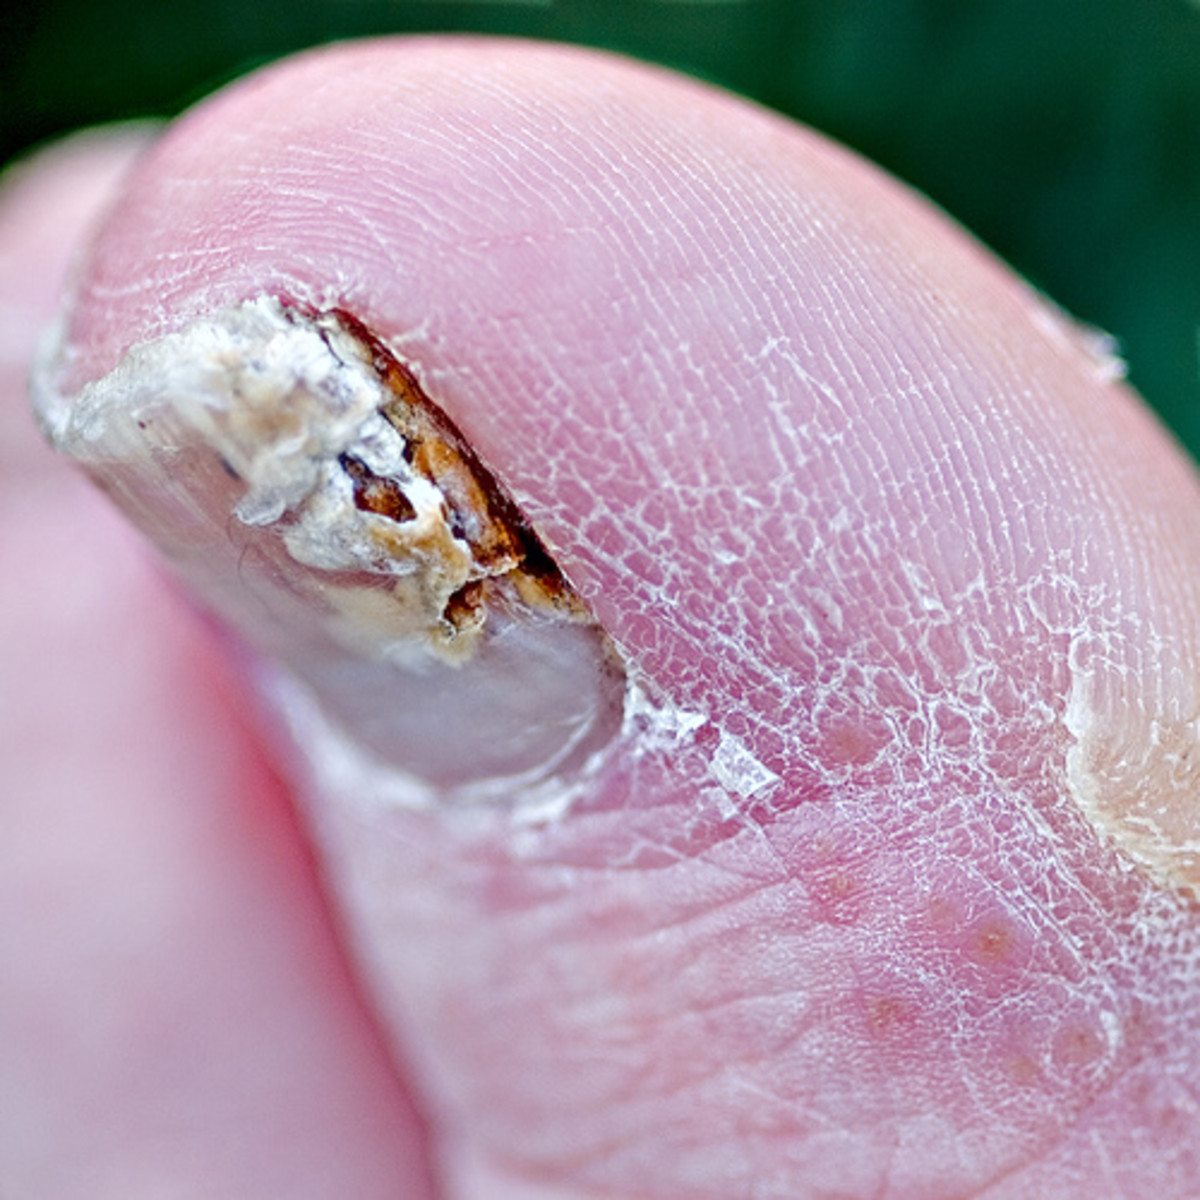 Toenail Fungus: Fusarium Infection